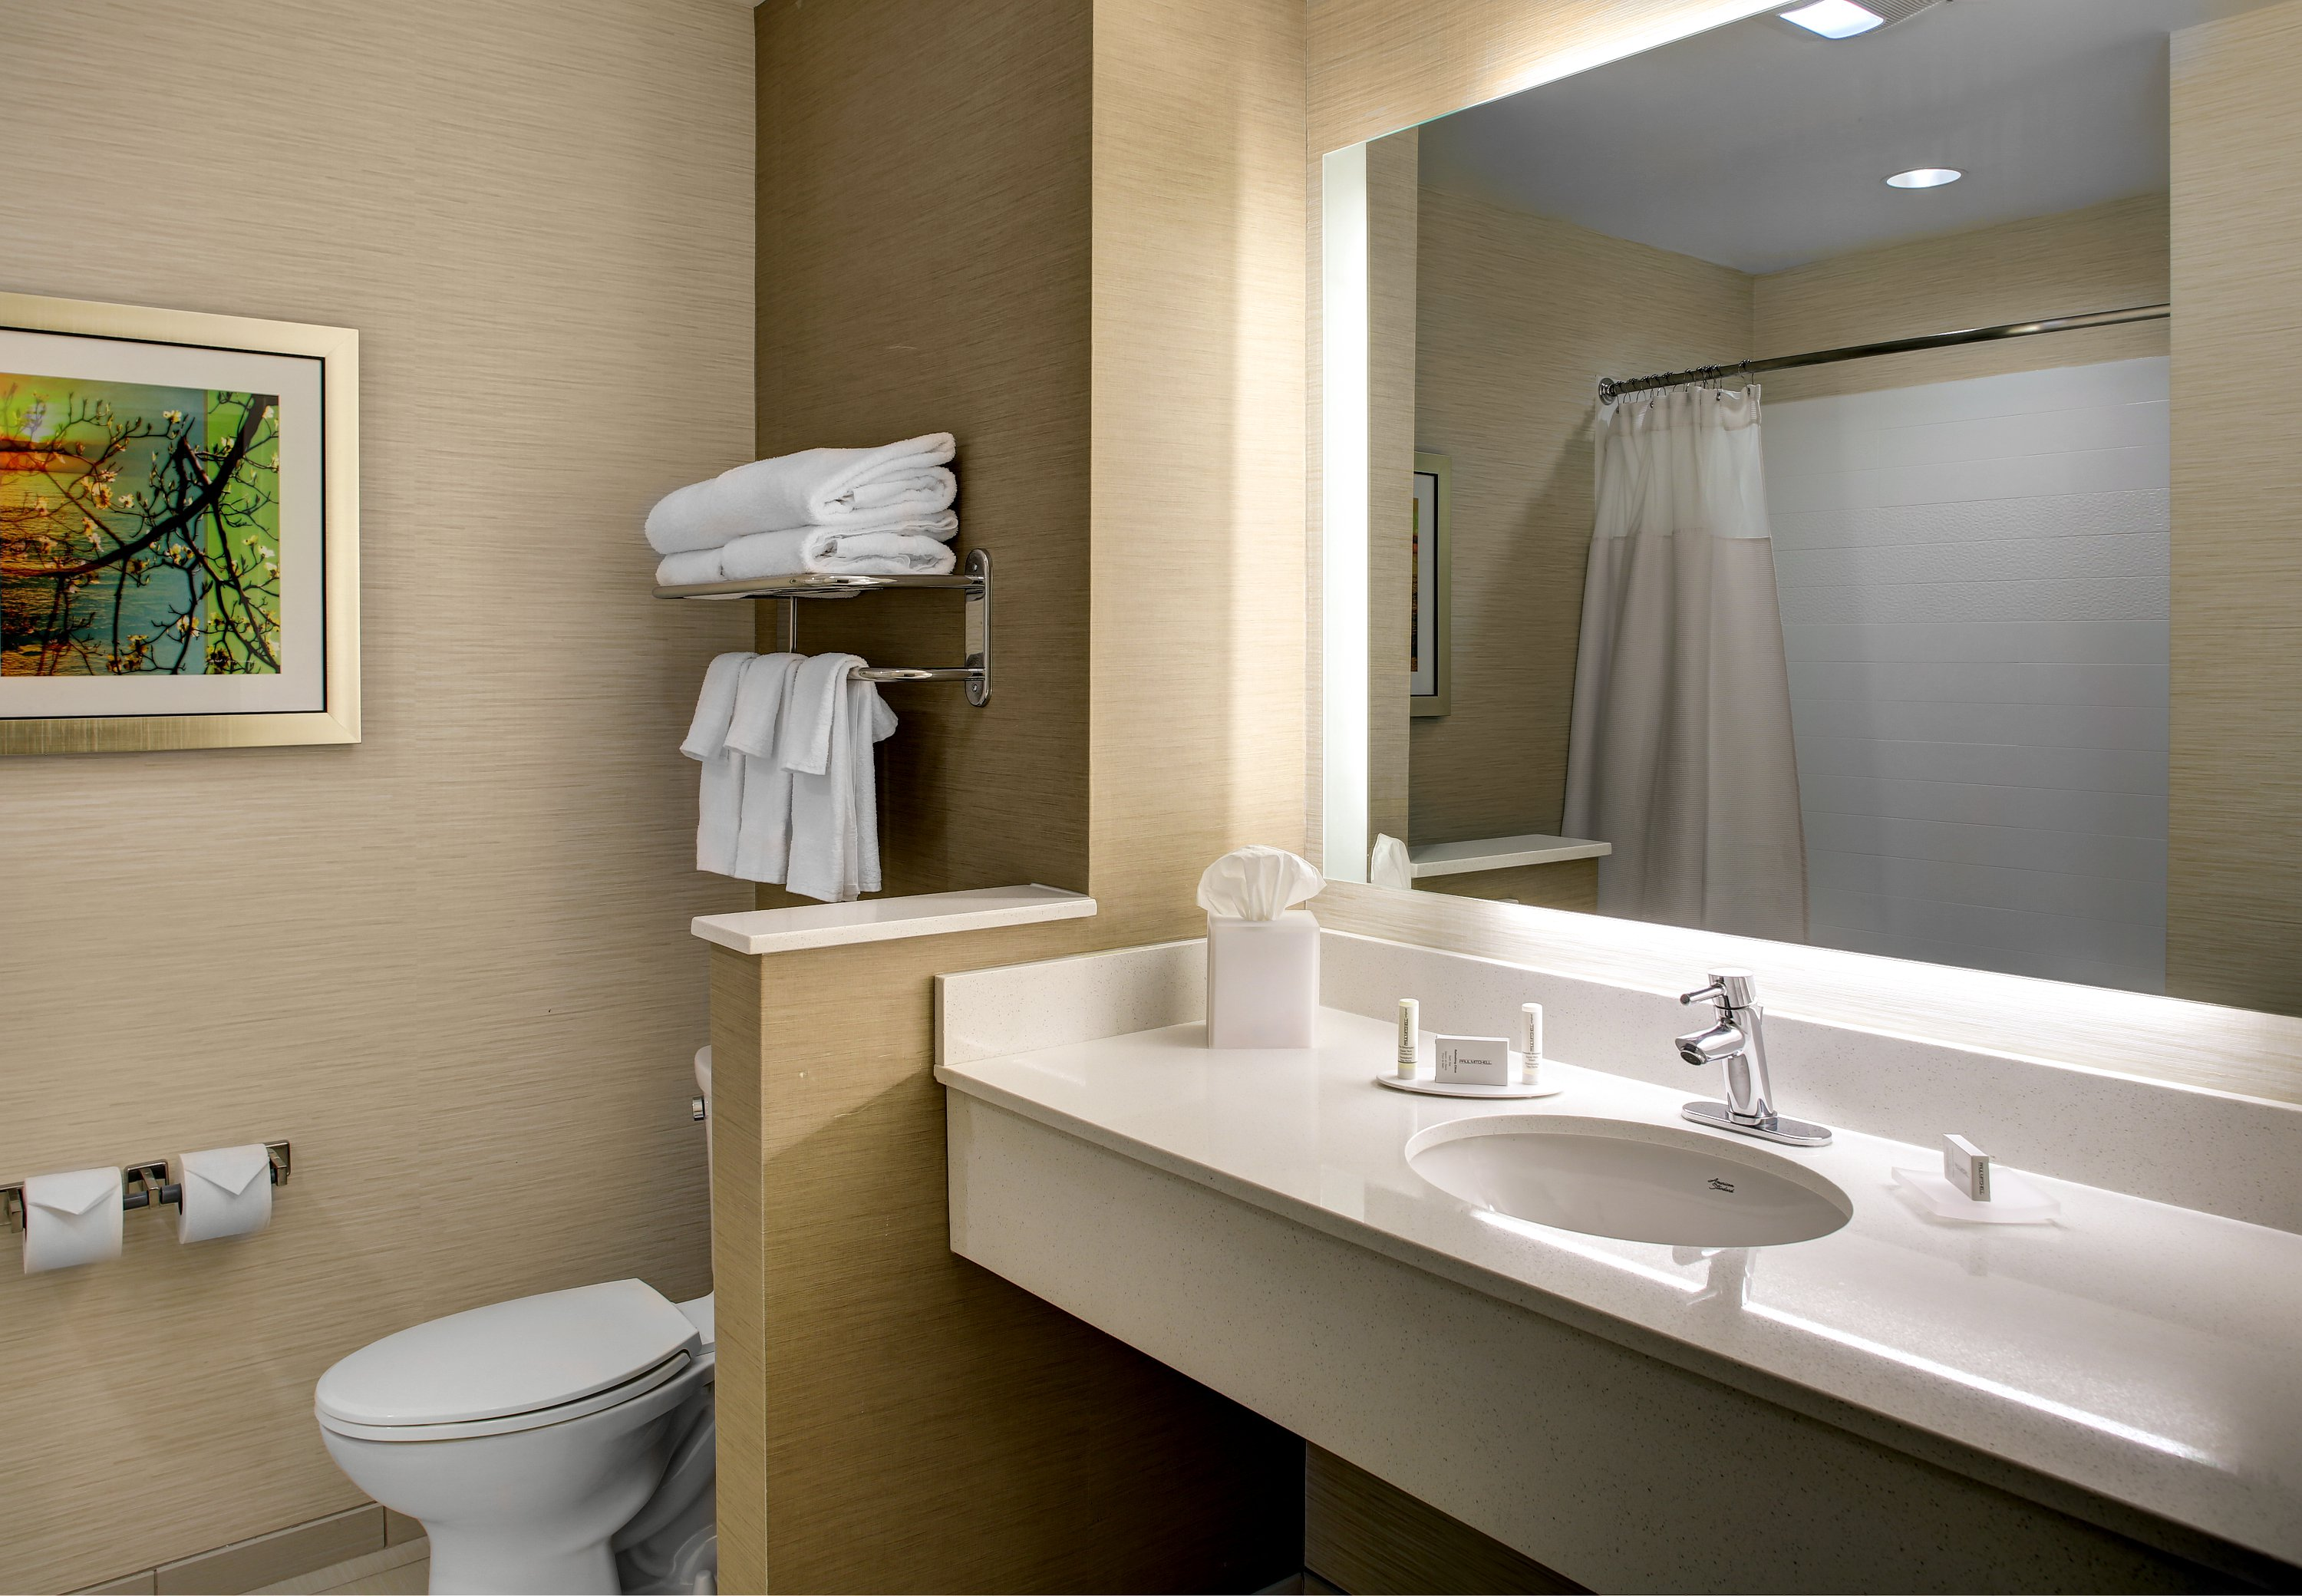 Fairfield Inn & Suites by Marriott Atlanta Stockbridge image 5